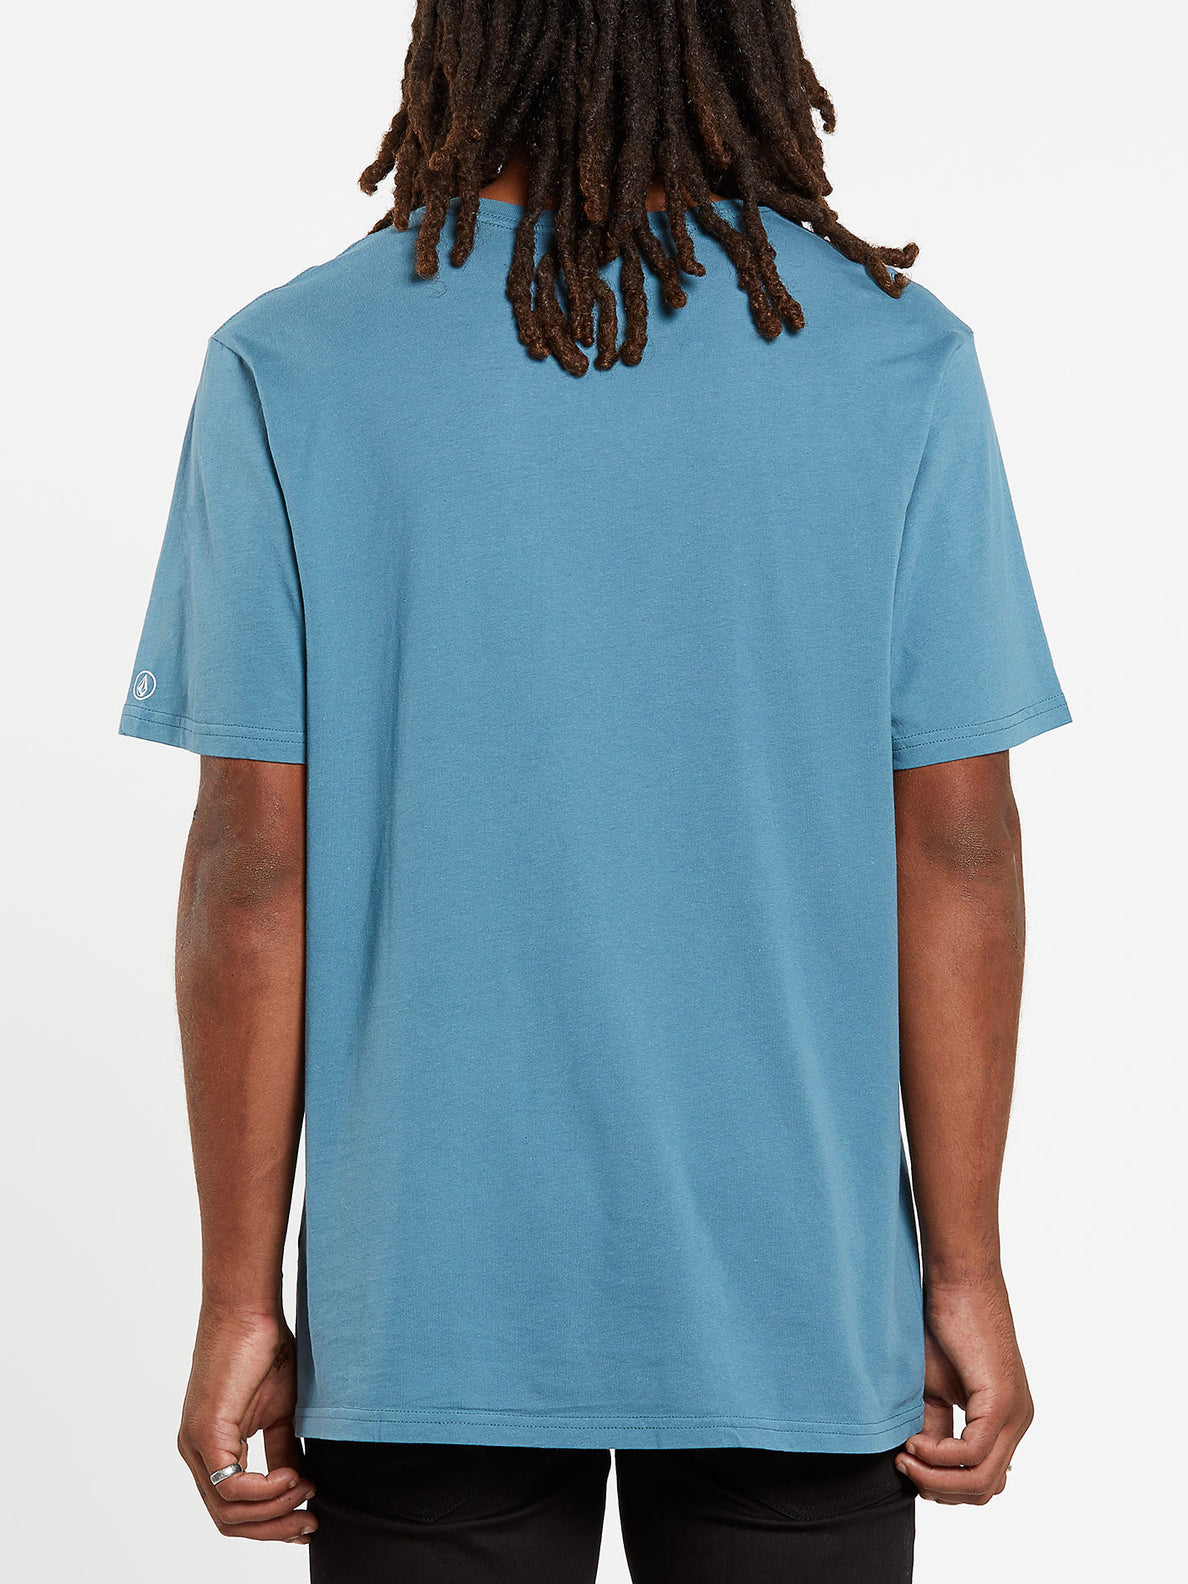 Solid Short Sleeve Pocket Tee - Horizon Blue (A5031808_HZN) [B]